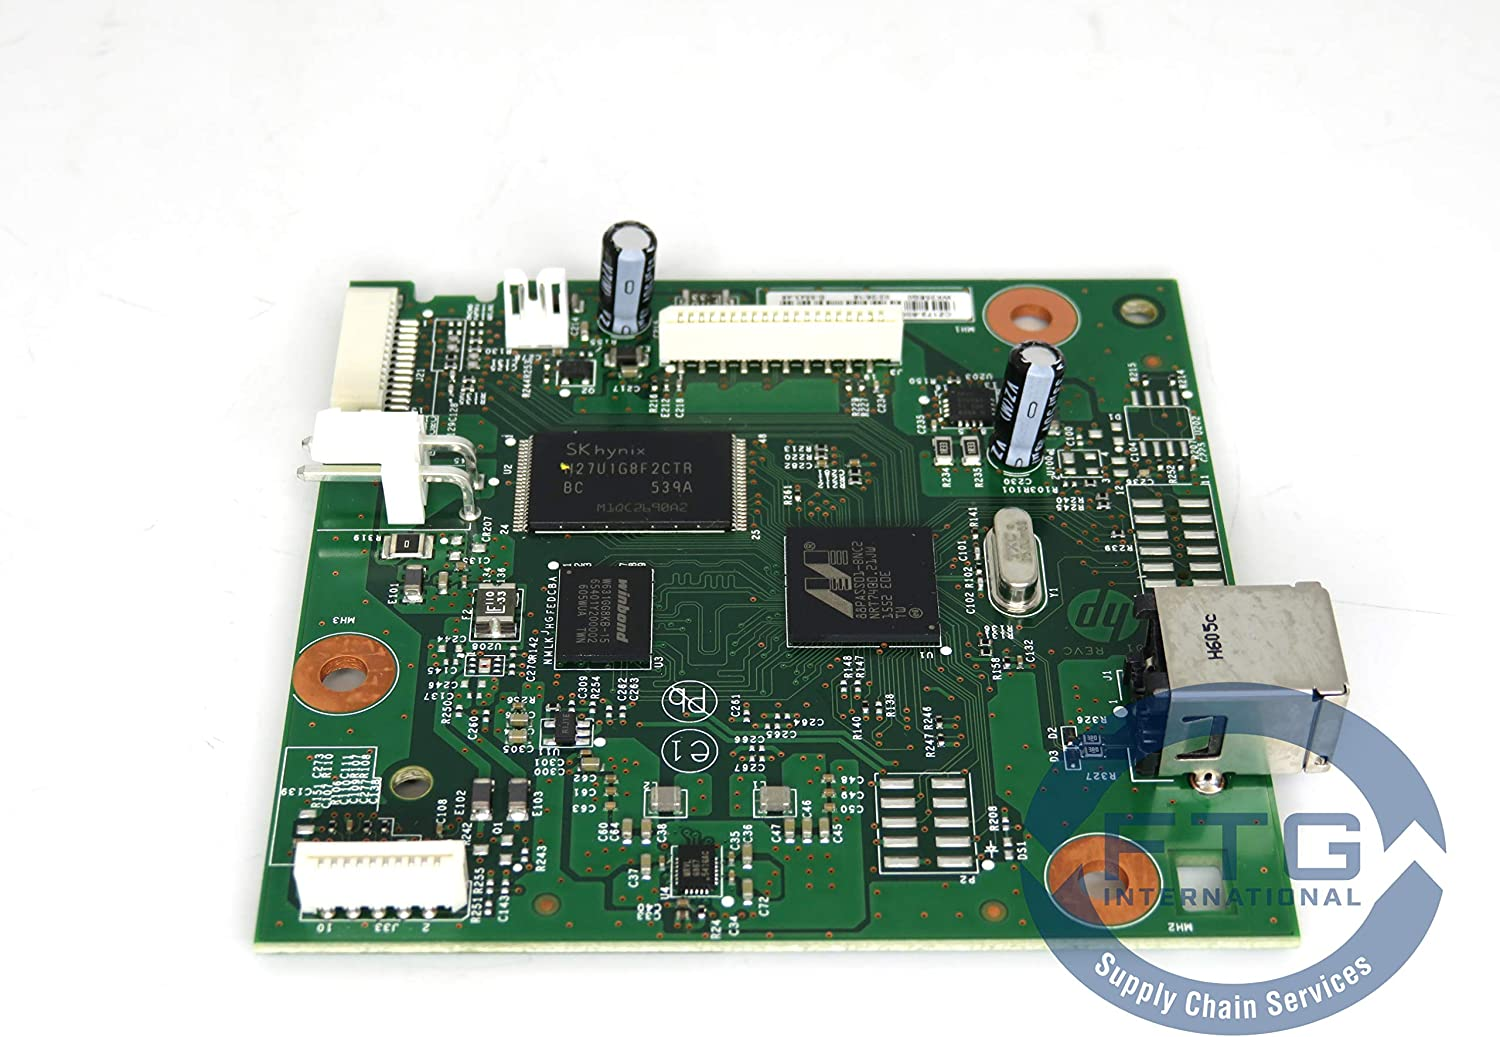 CZ172-60001 FMTR PCA 3in1 Base